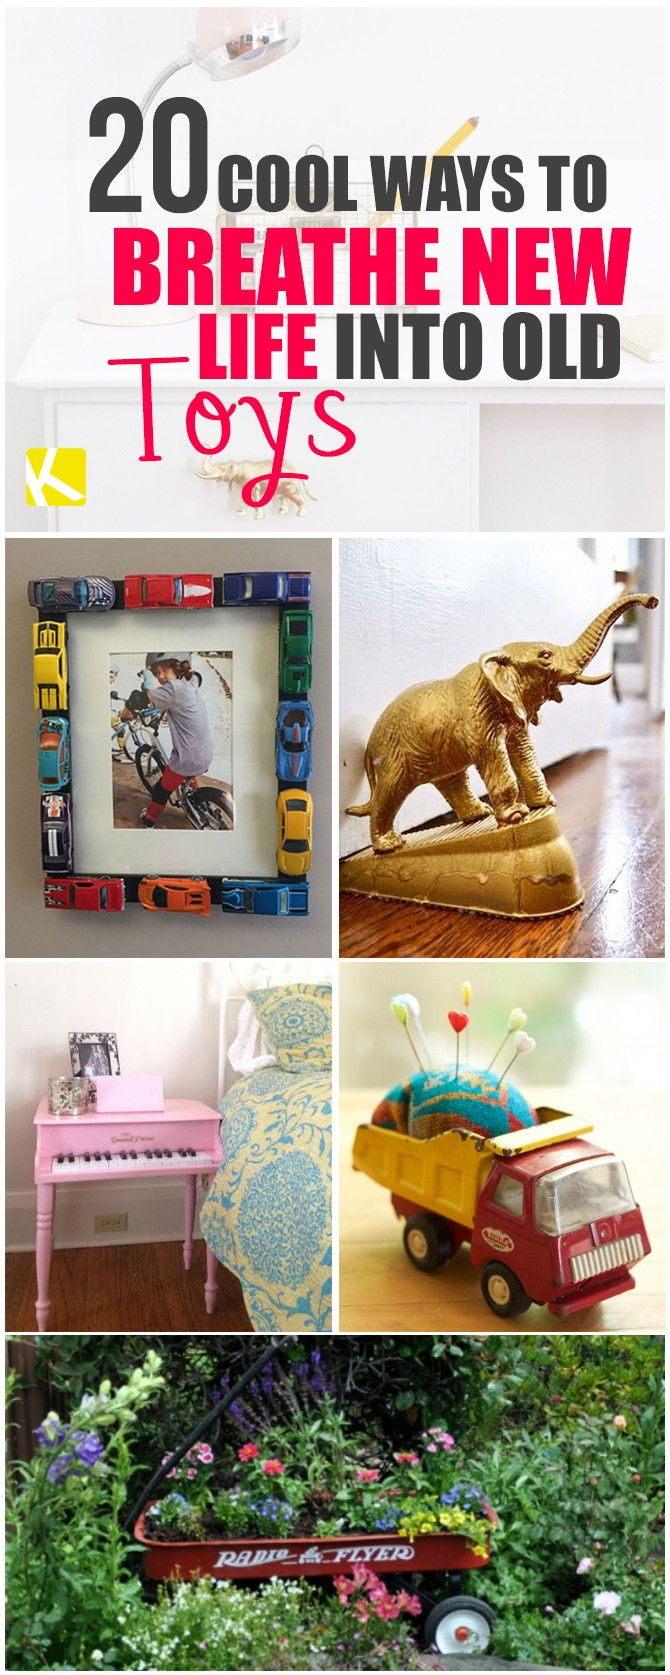 Before you throw away that toy soldier that's been ignored for years (or replaced this past Christmas), consider repurposing it and other old toys. Here are 20 ideas to get you started.